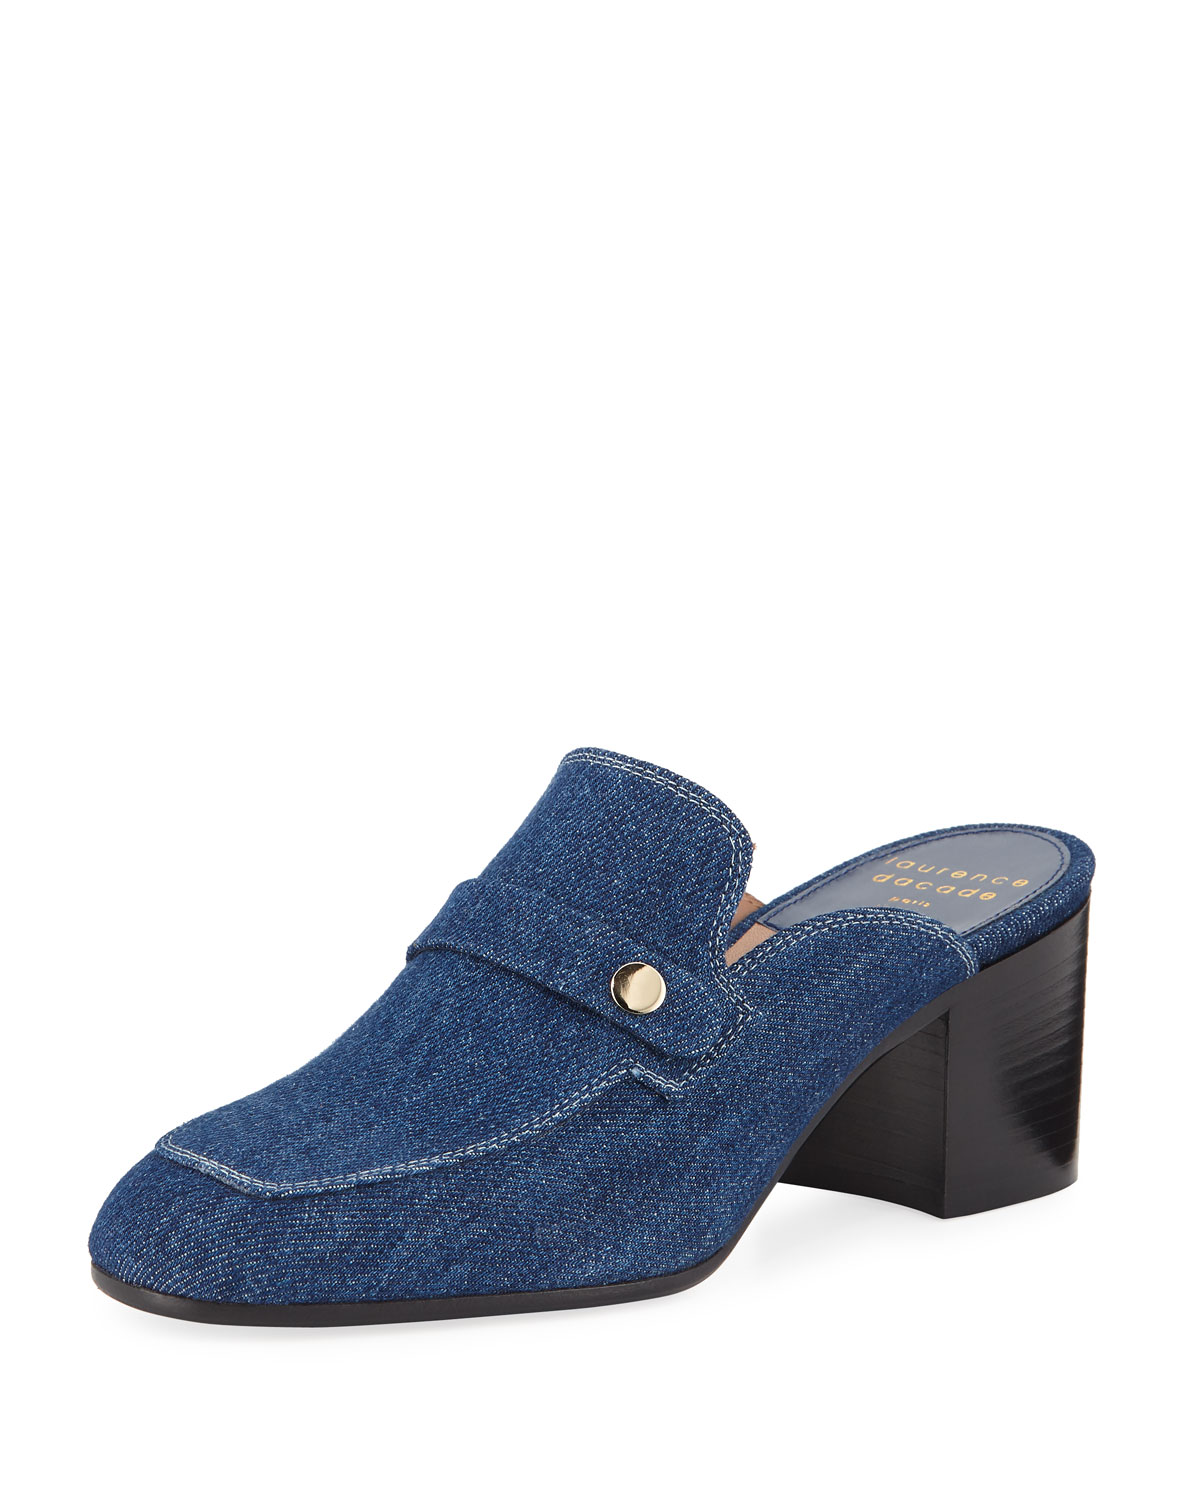 Laurence Dacade Loafers THELMA DENIM PENNY LOAFER MULES